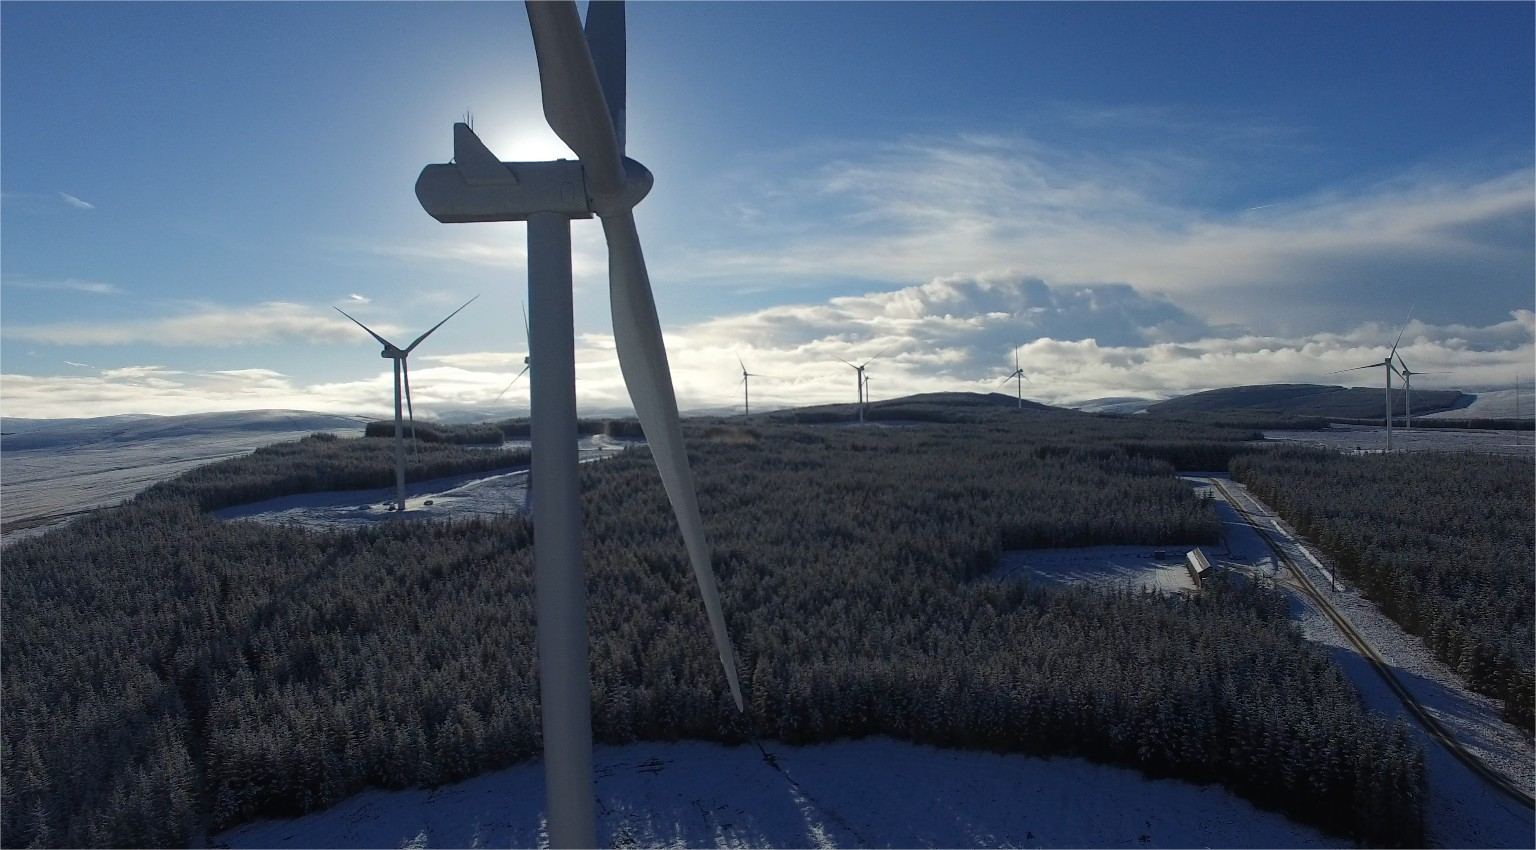 UK_Andershaw wind farm 1.jpg